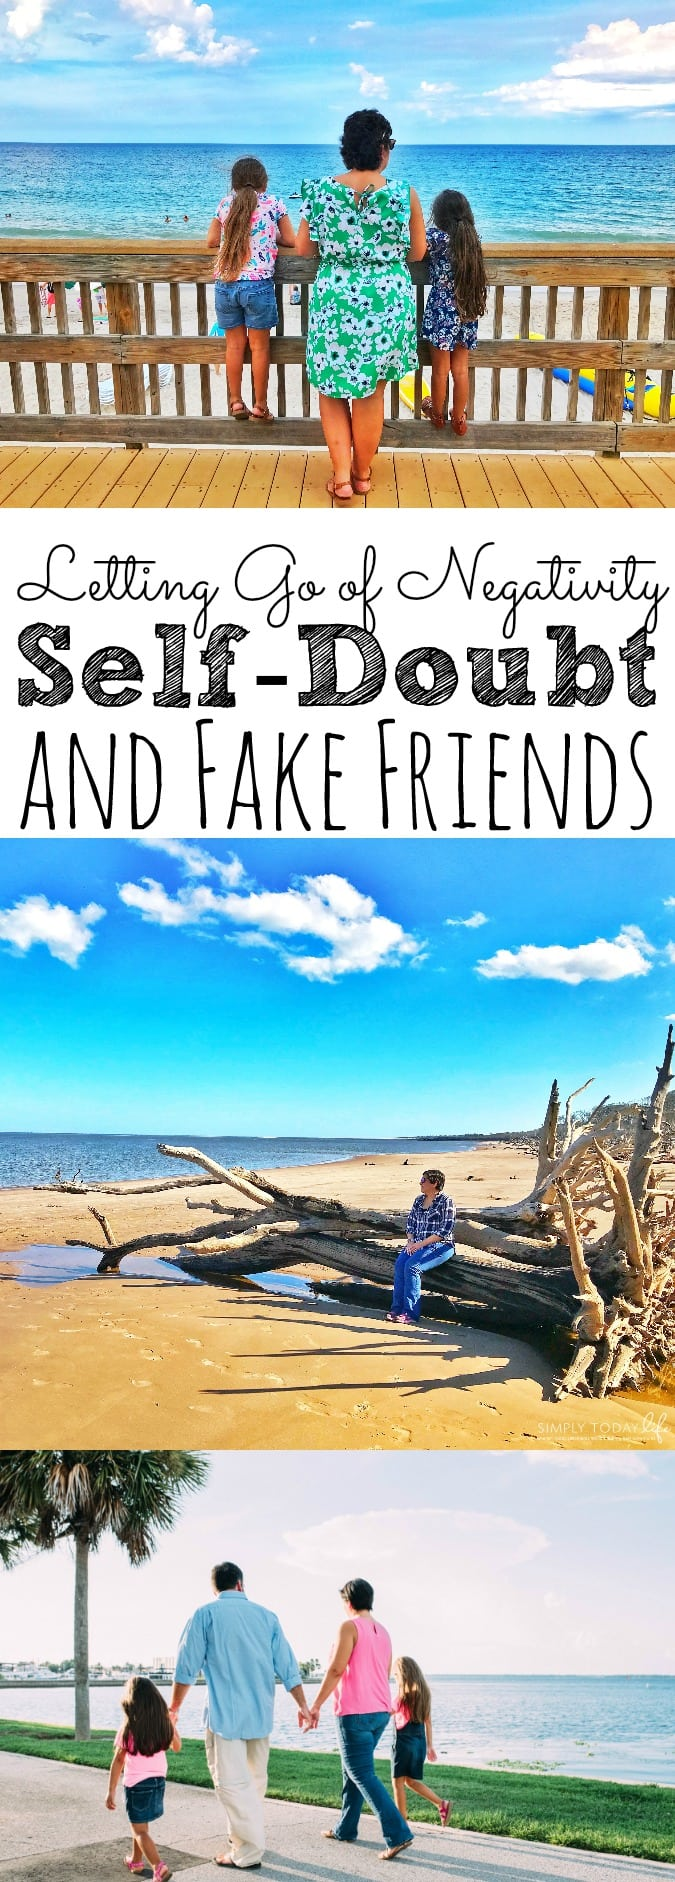 Letting Go Of Negativity, Self Doubt, and Fake Friends - simplytodaylife.com